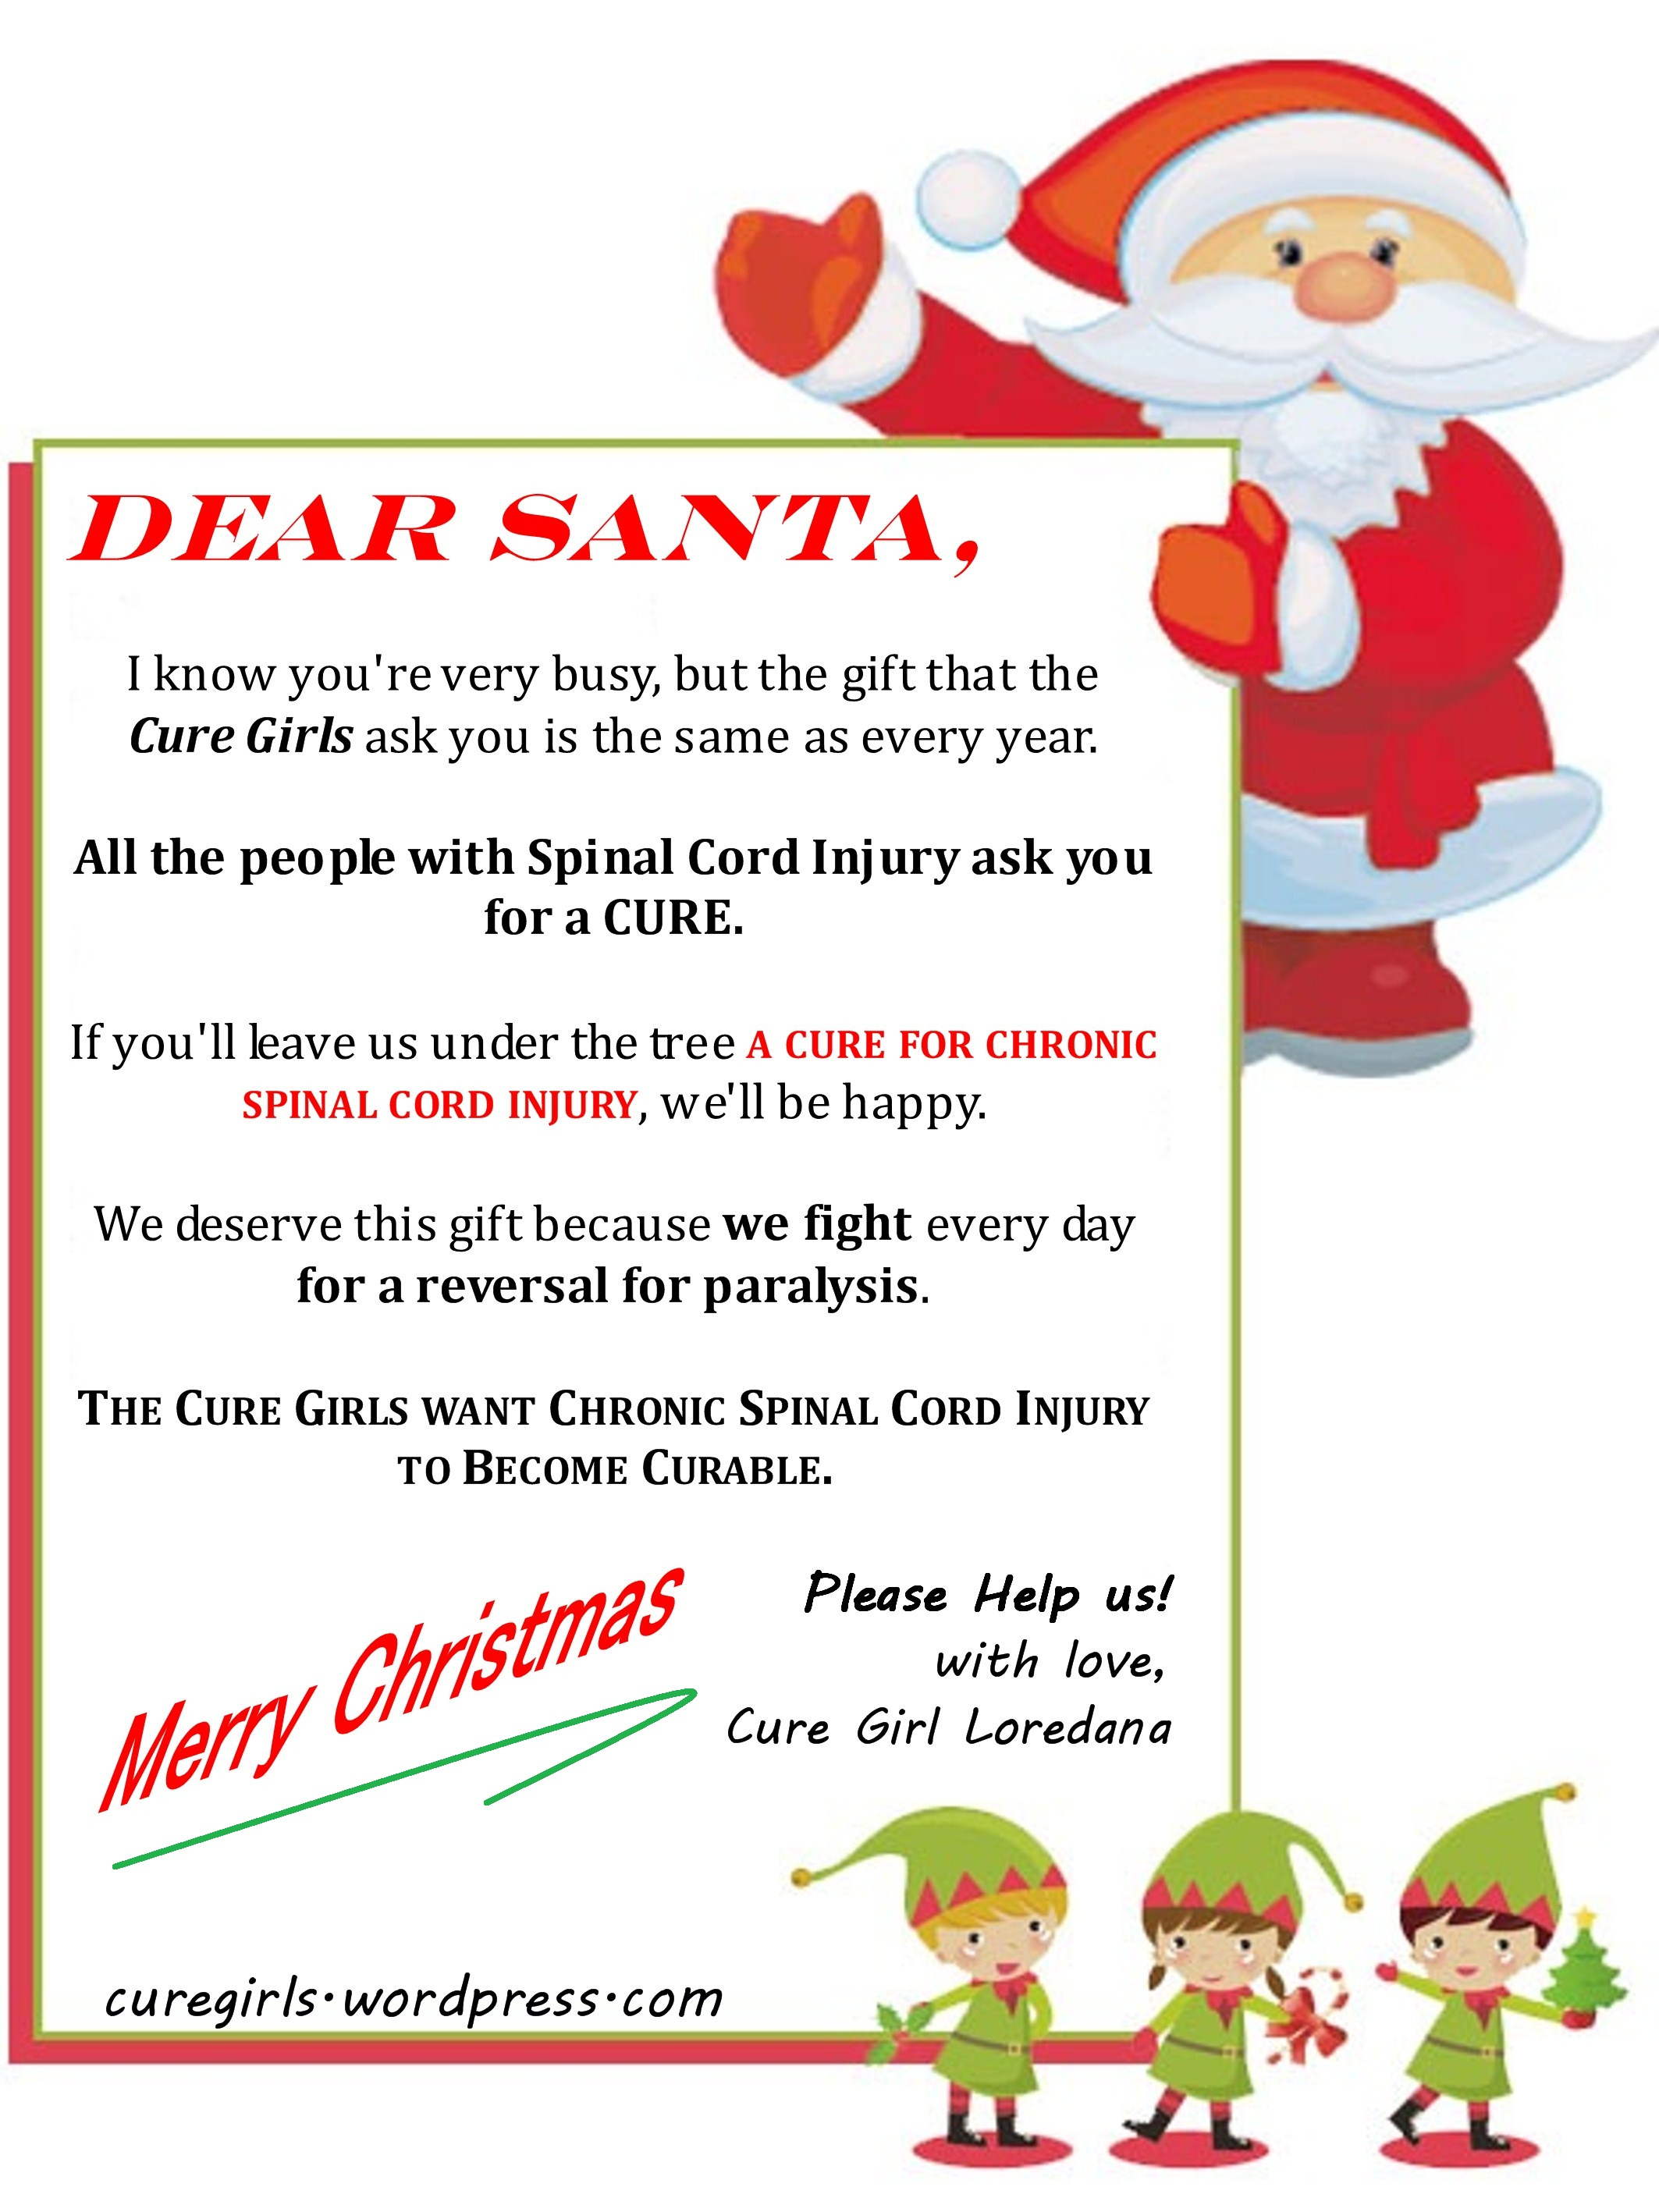 Letter To Santa From Cure Girl Loredana  Cure Girls